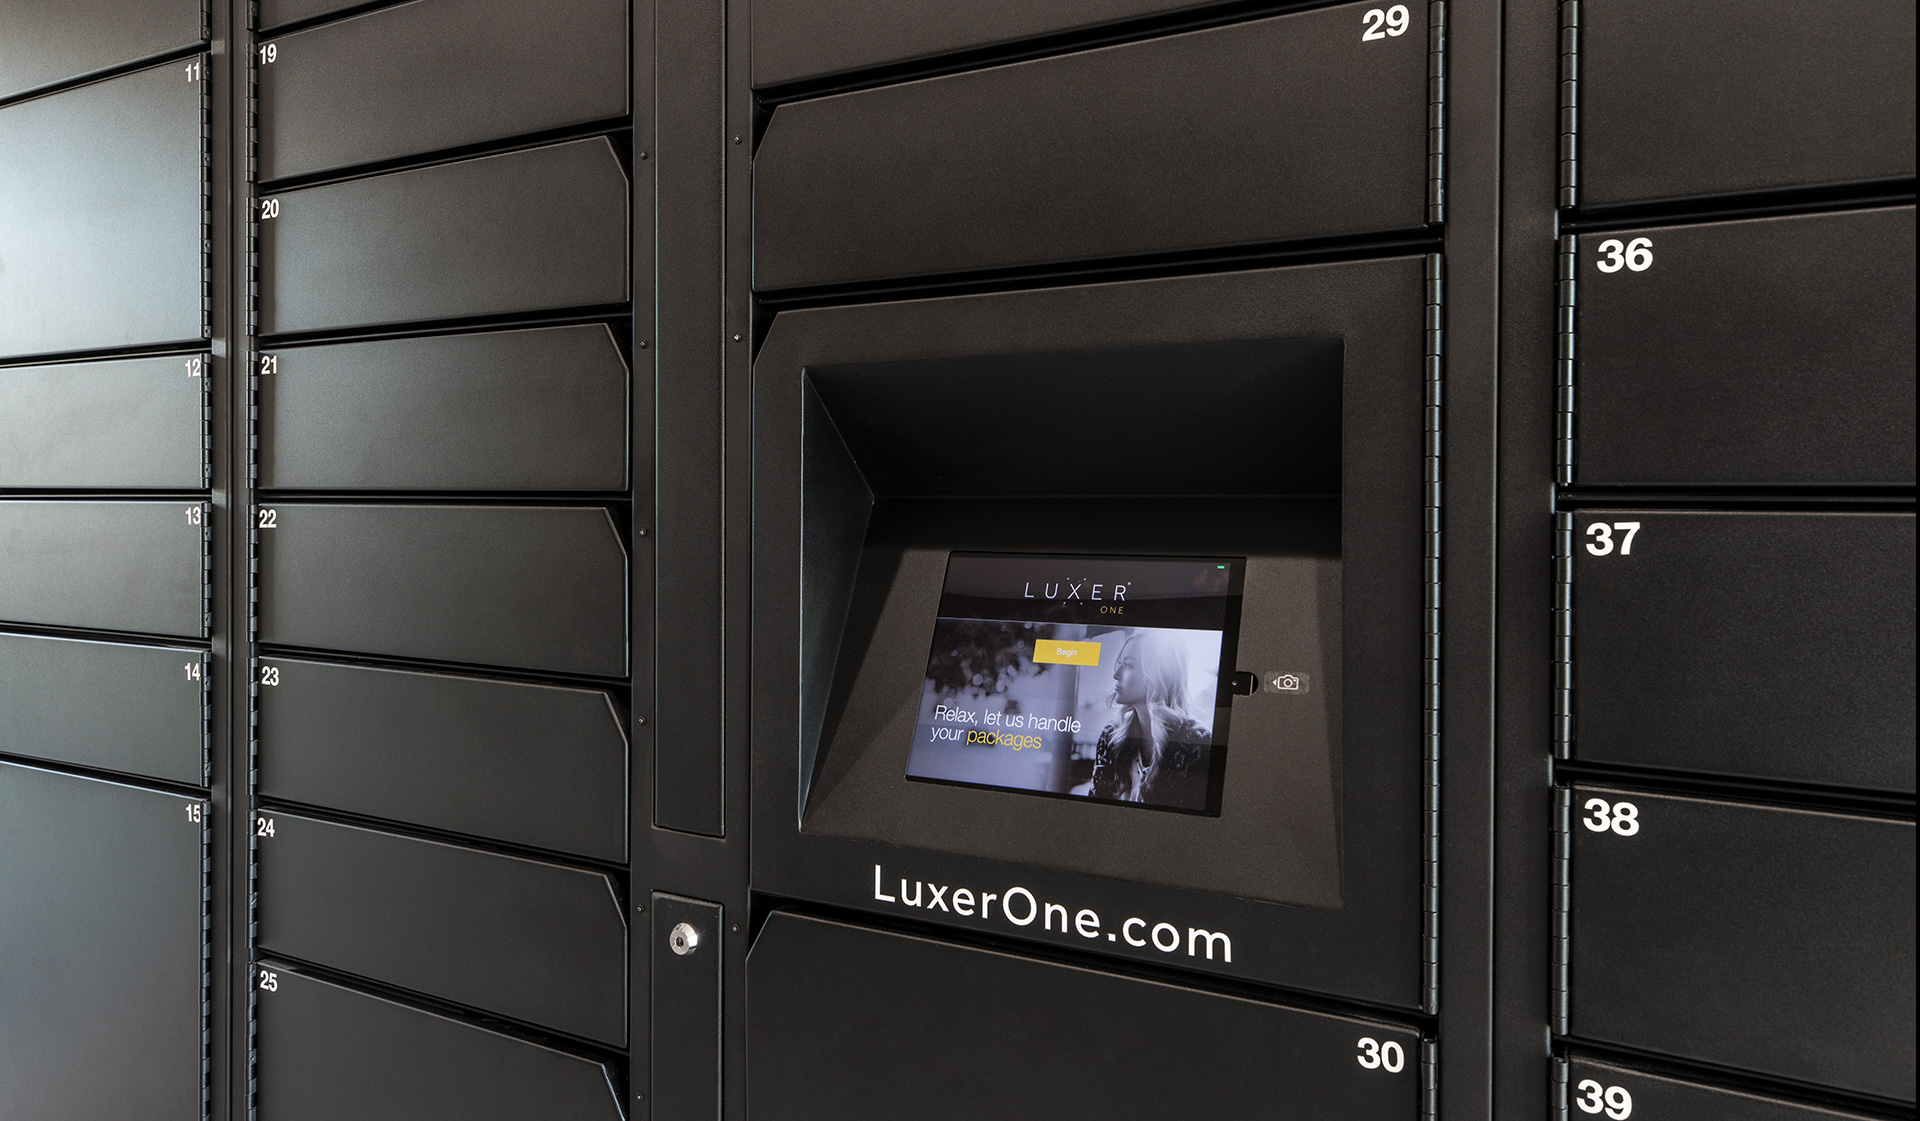 One Ardmore Place - amenties - package lockers